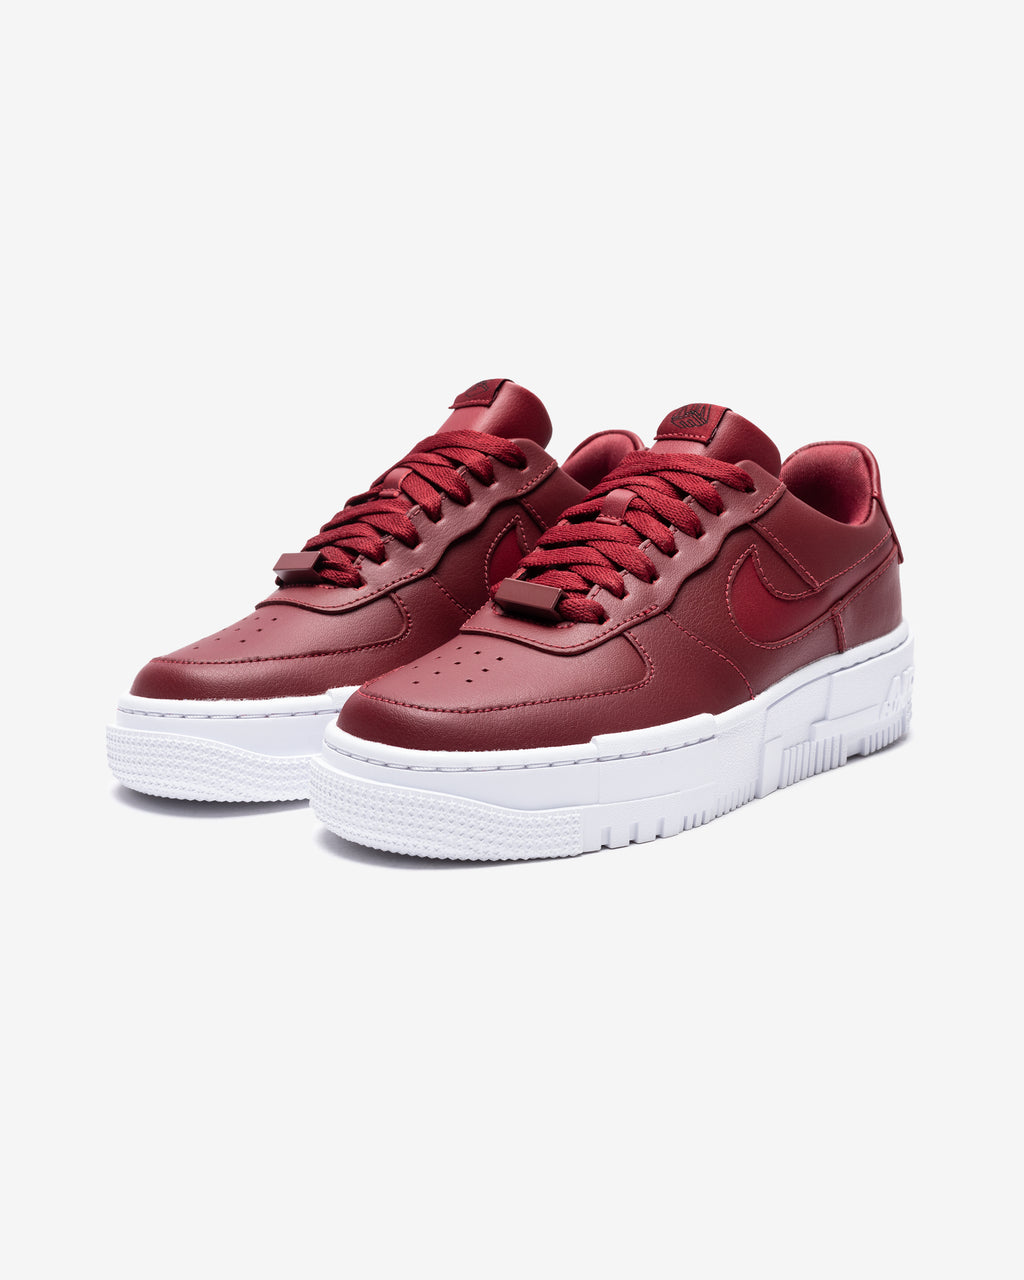 WOMEN'S AIR FORCE 1 PIXEL - TEAMRED/ WHITE